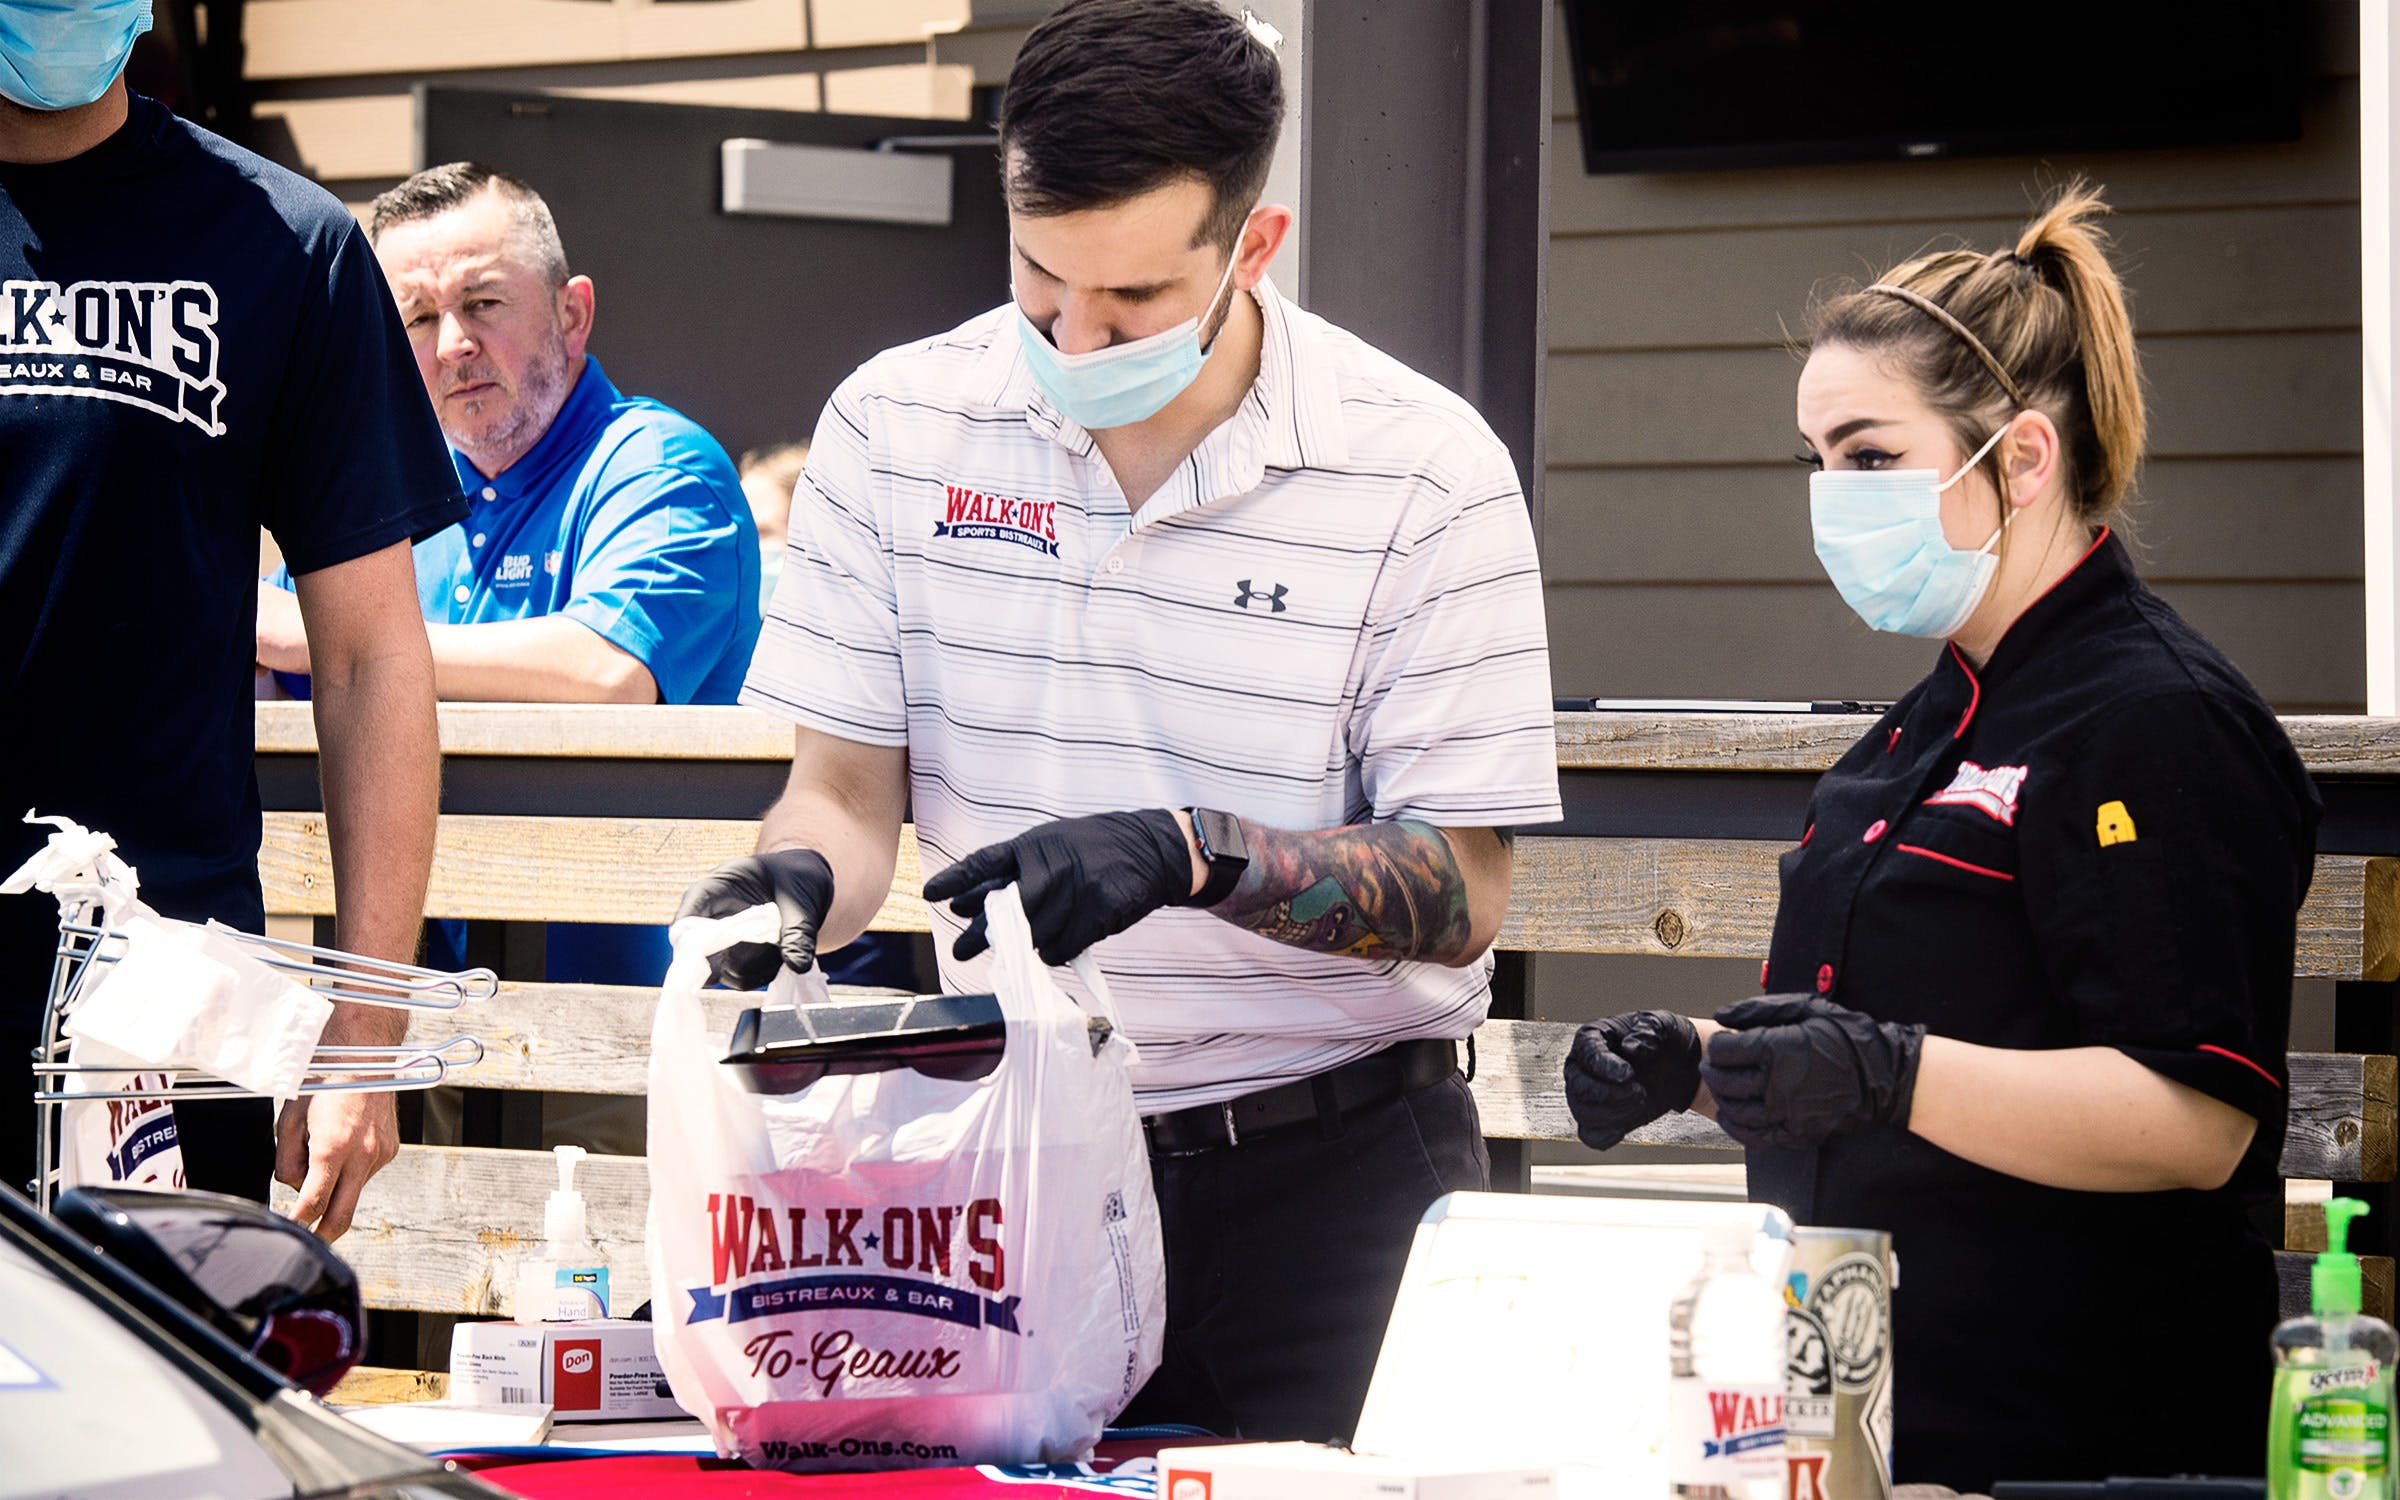 Walk-On's Sports Bistreaux general manager Fernando Guzman and executive kitchen manager Presley Parker bag meals to hand out during the restaurant's Furlough Kitchen by Walk-On's event in Tyler on April 30, 2020.